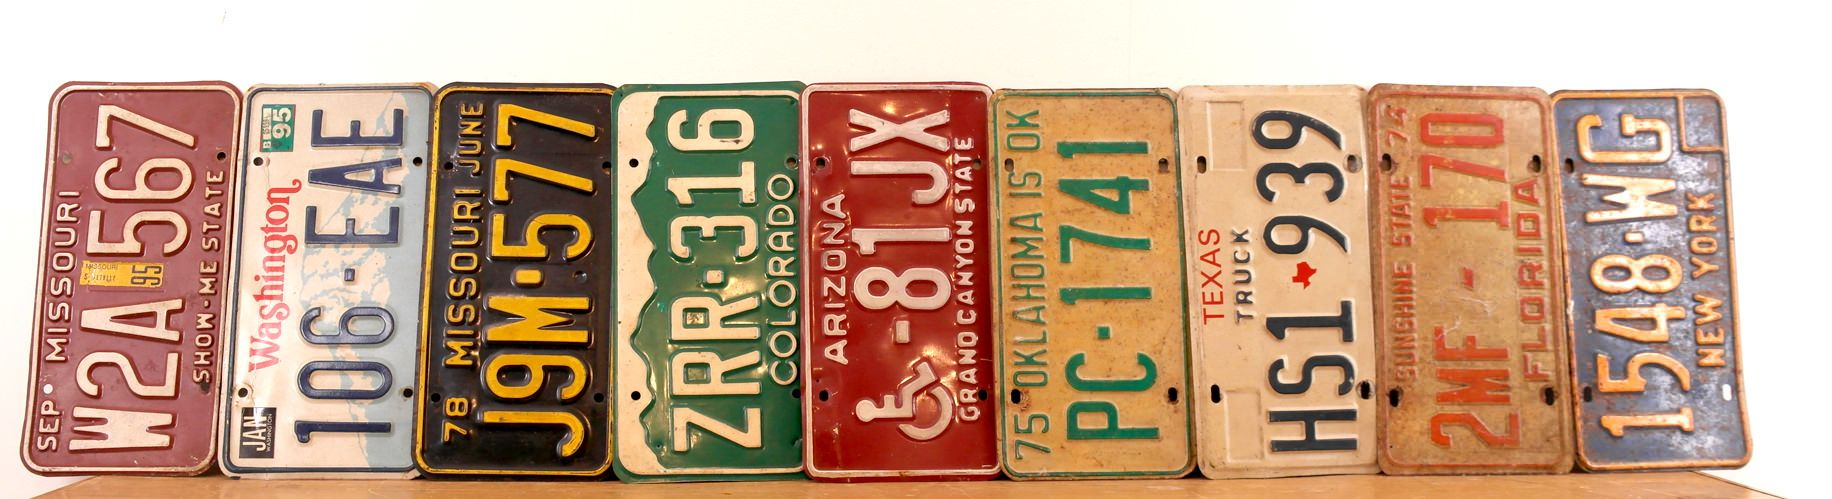 old number plates - Google Search   Child\'s Play   Pinterest ...